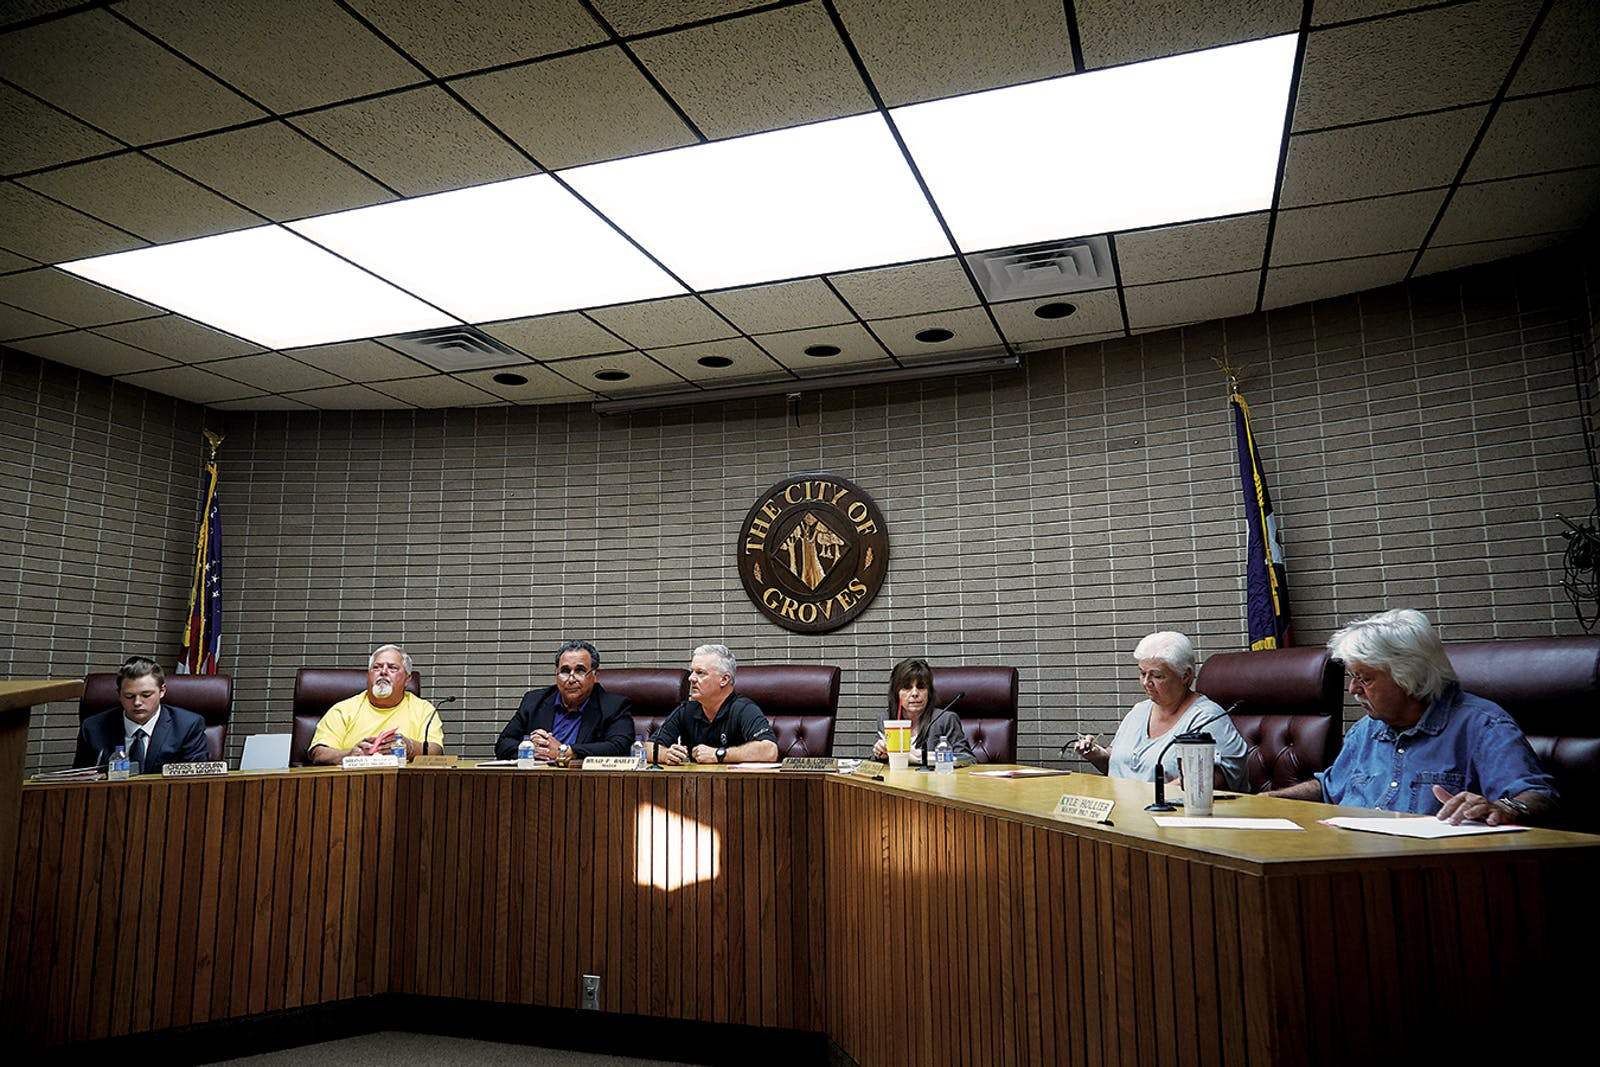 Groves city council meeting